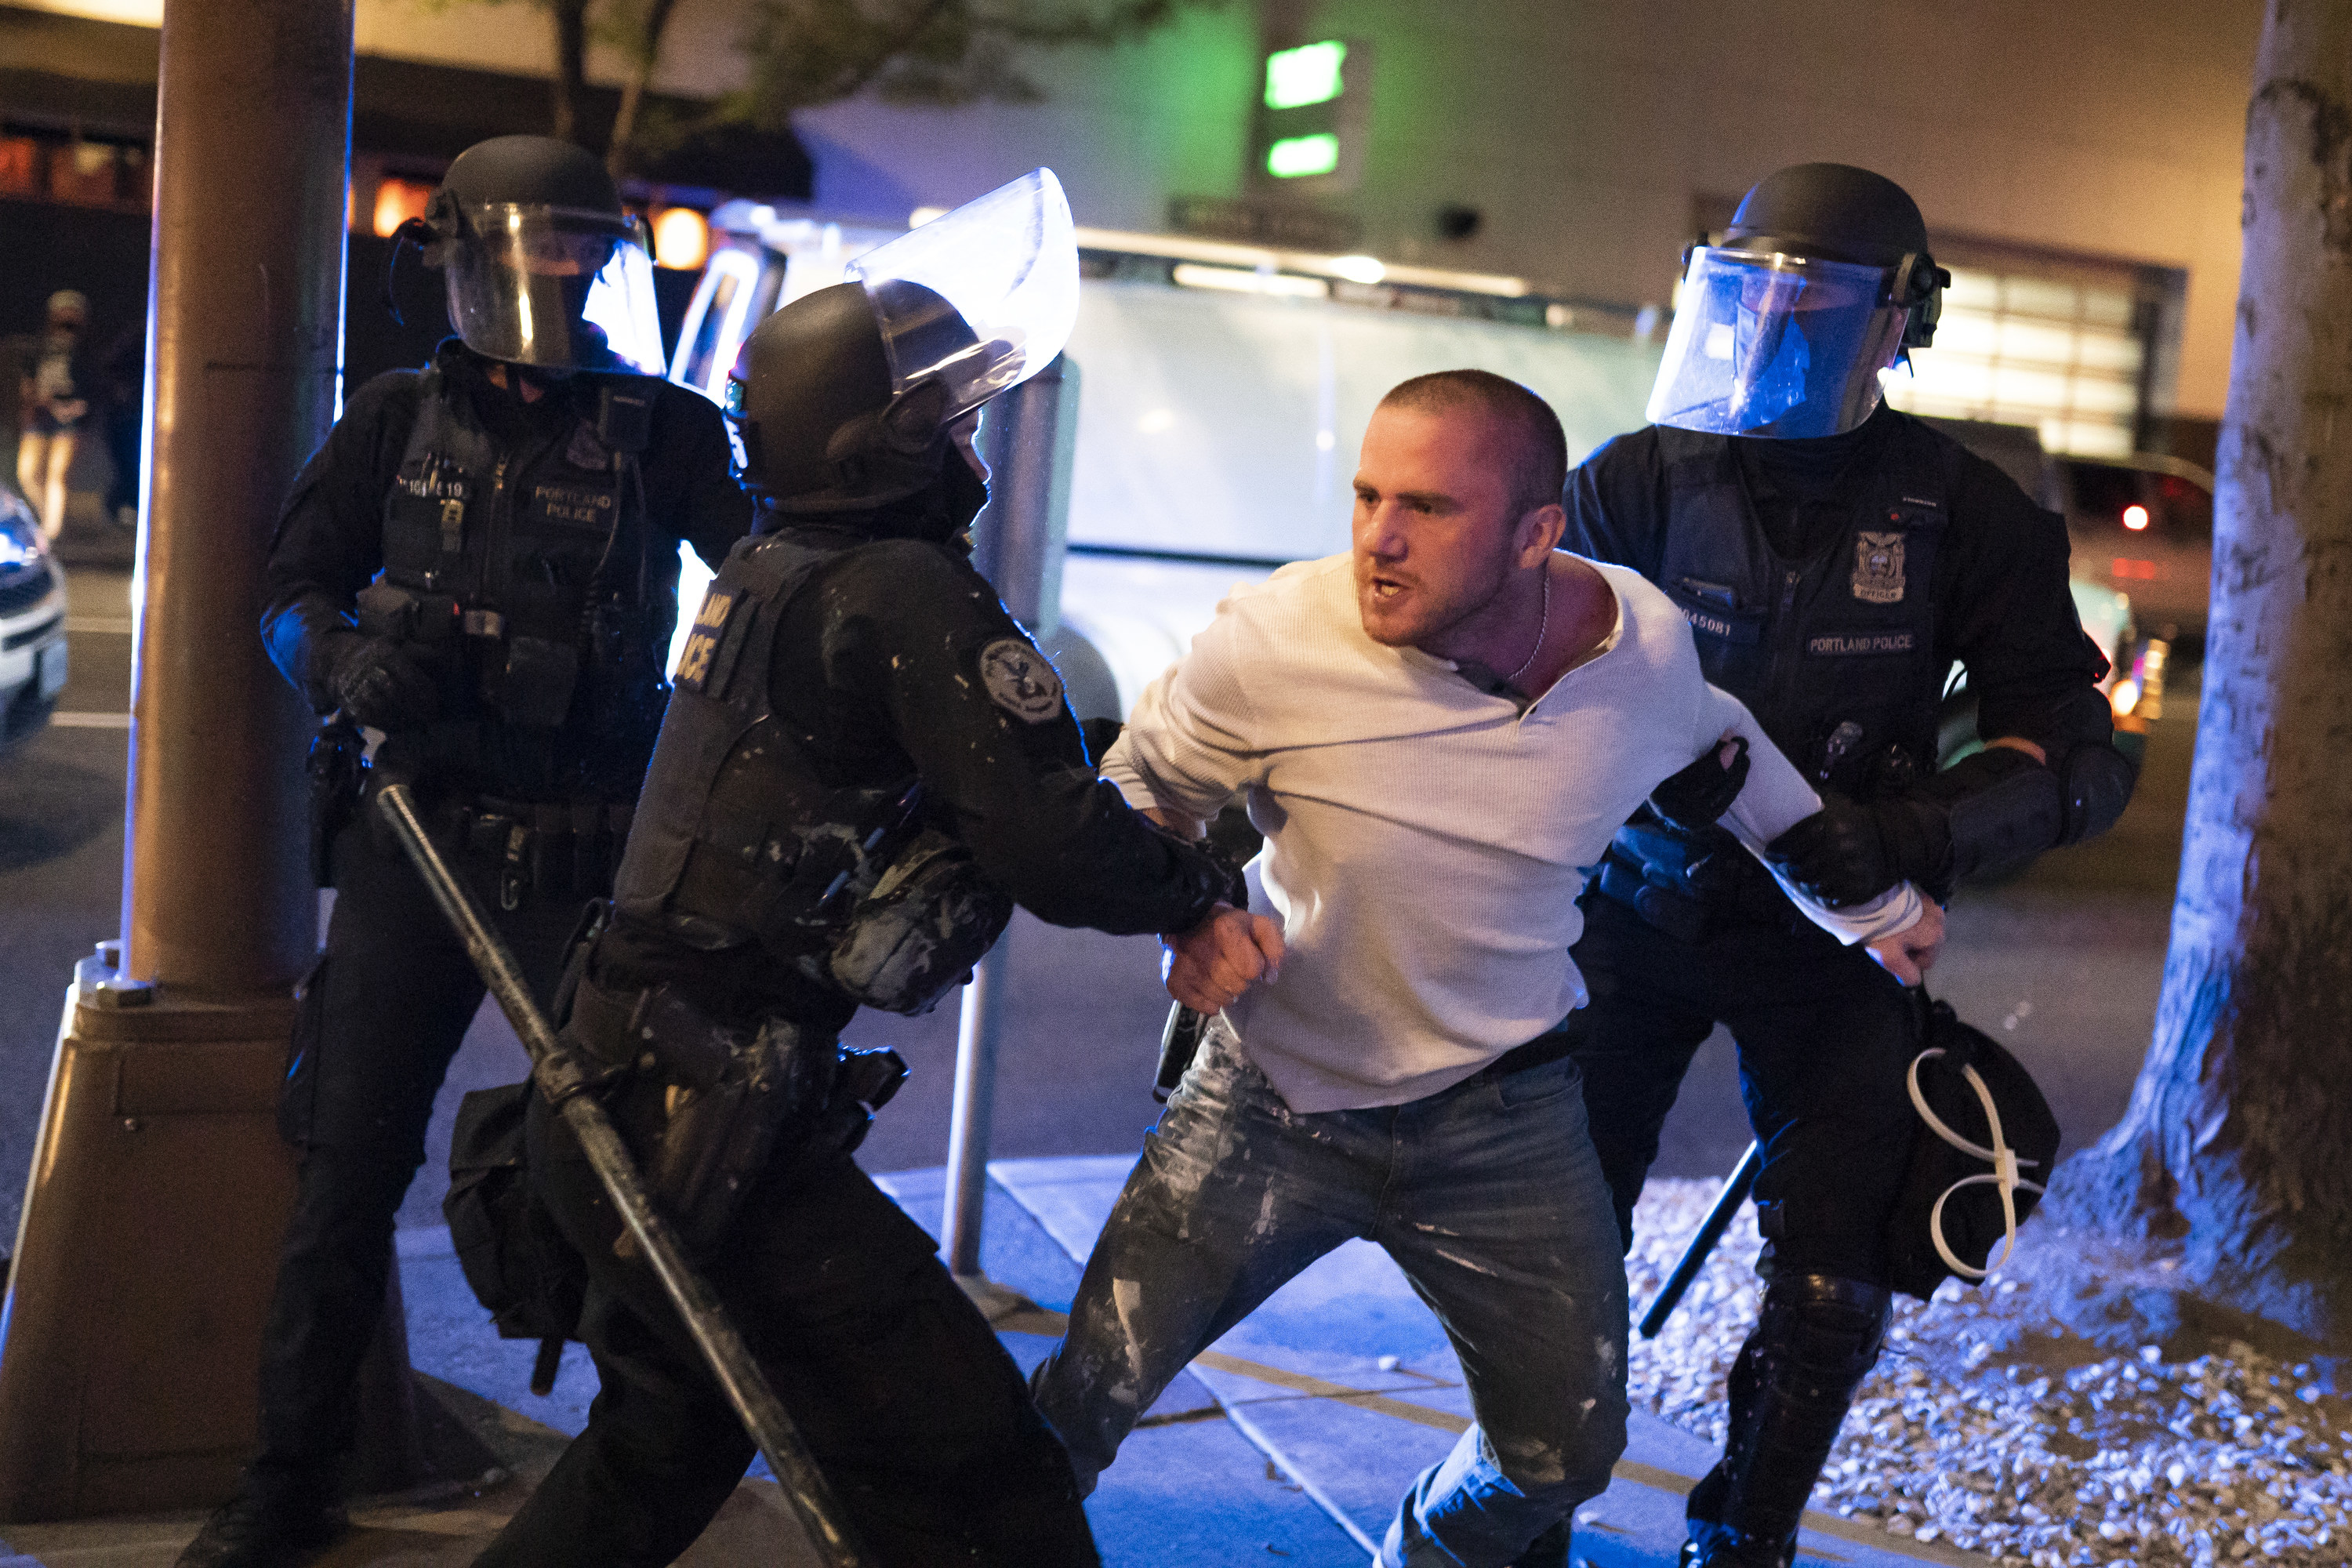 A man looks shocked as he is restrained by three officers wearing riot gear.